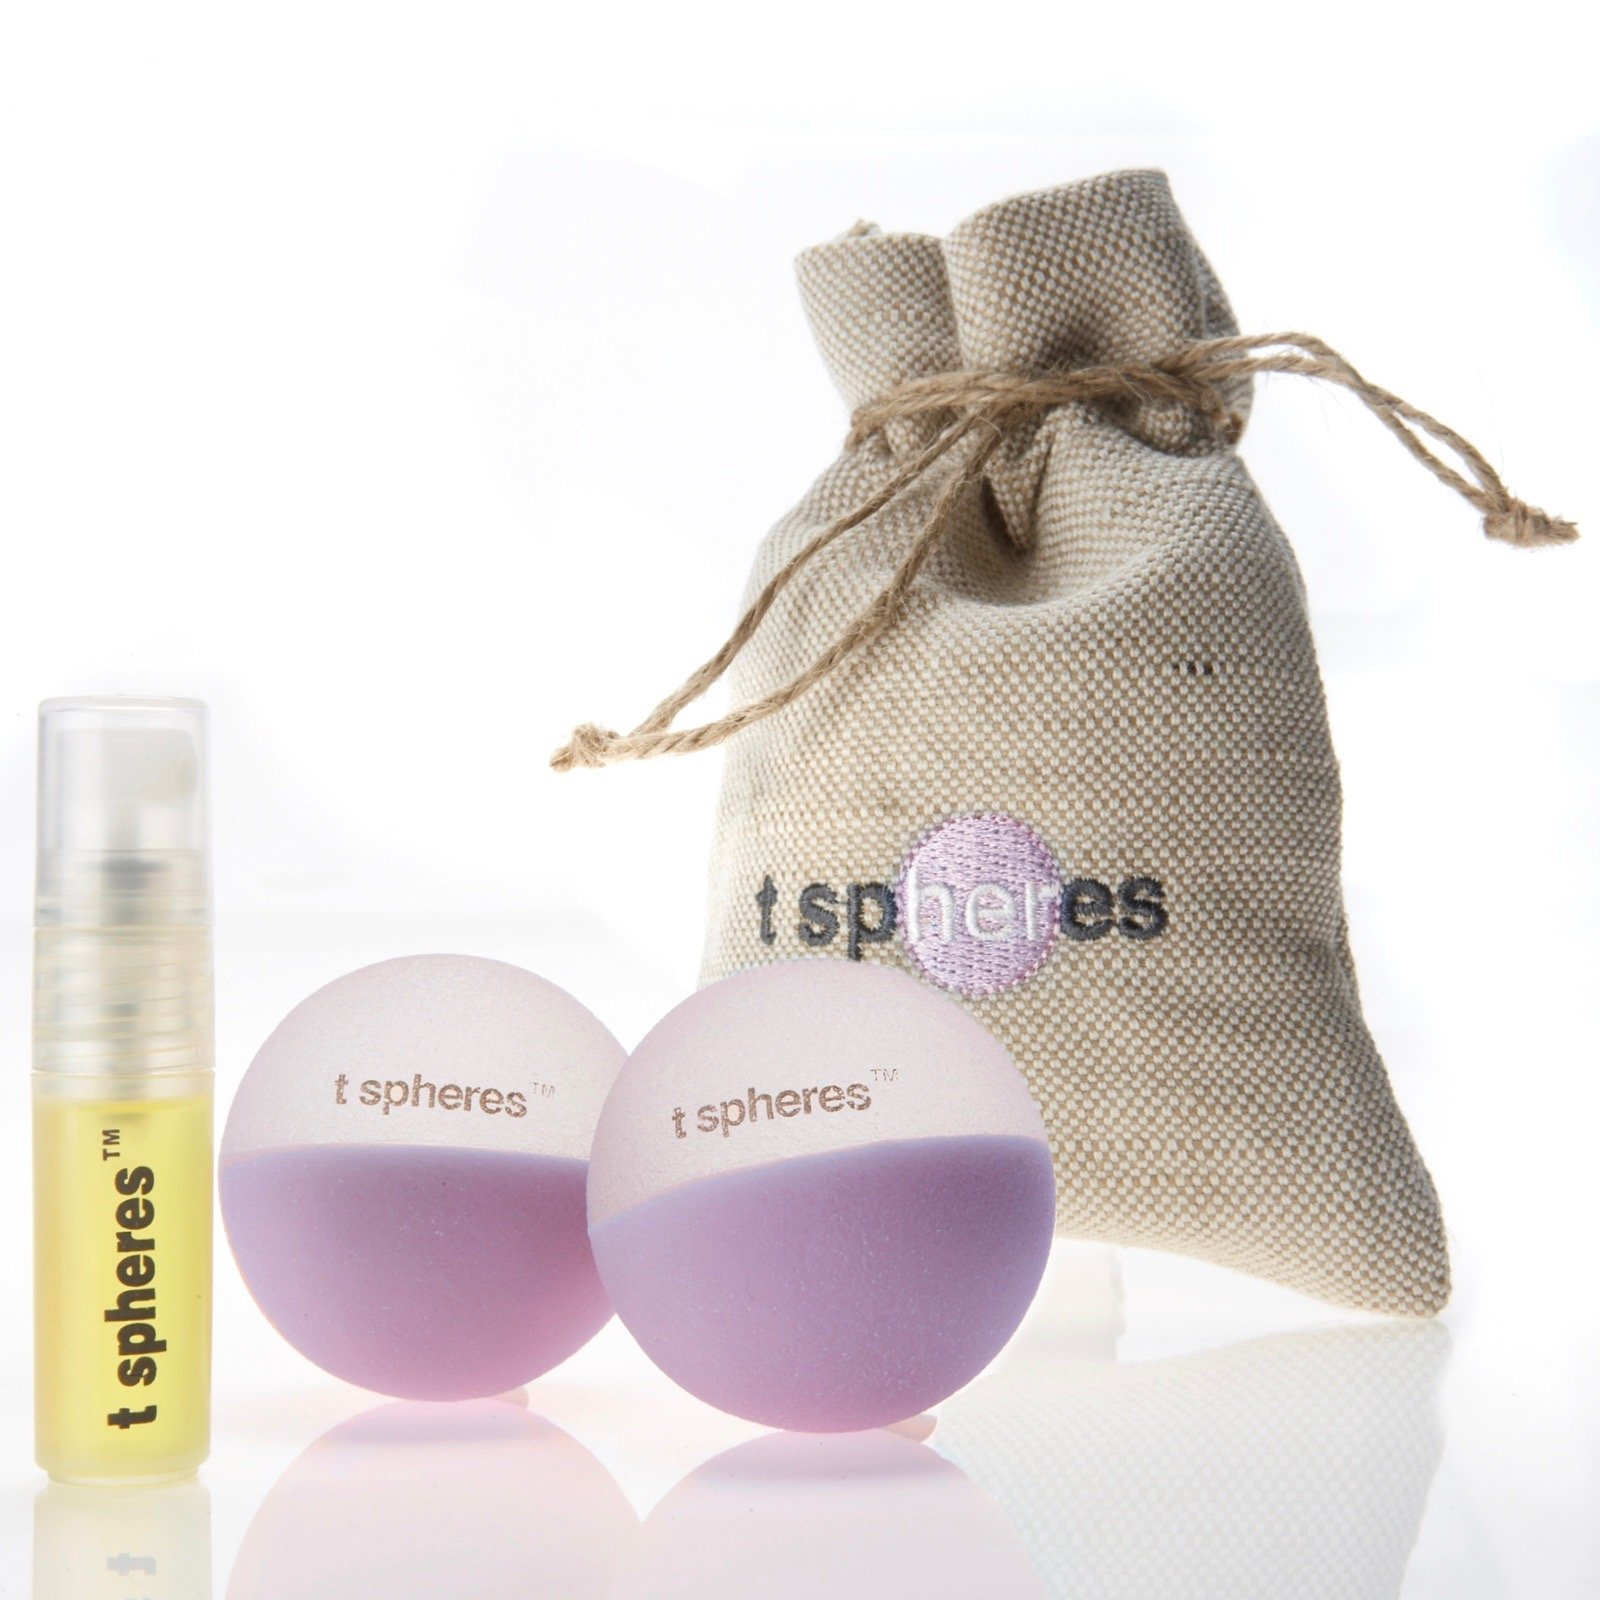 T Spheres Peace & Quiet, Aromatherapy Infused Massage Ball Set (Lavender Aroma), 45mm (Golf Ball Size)